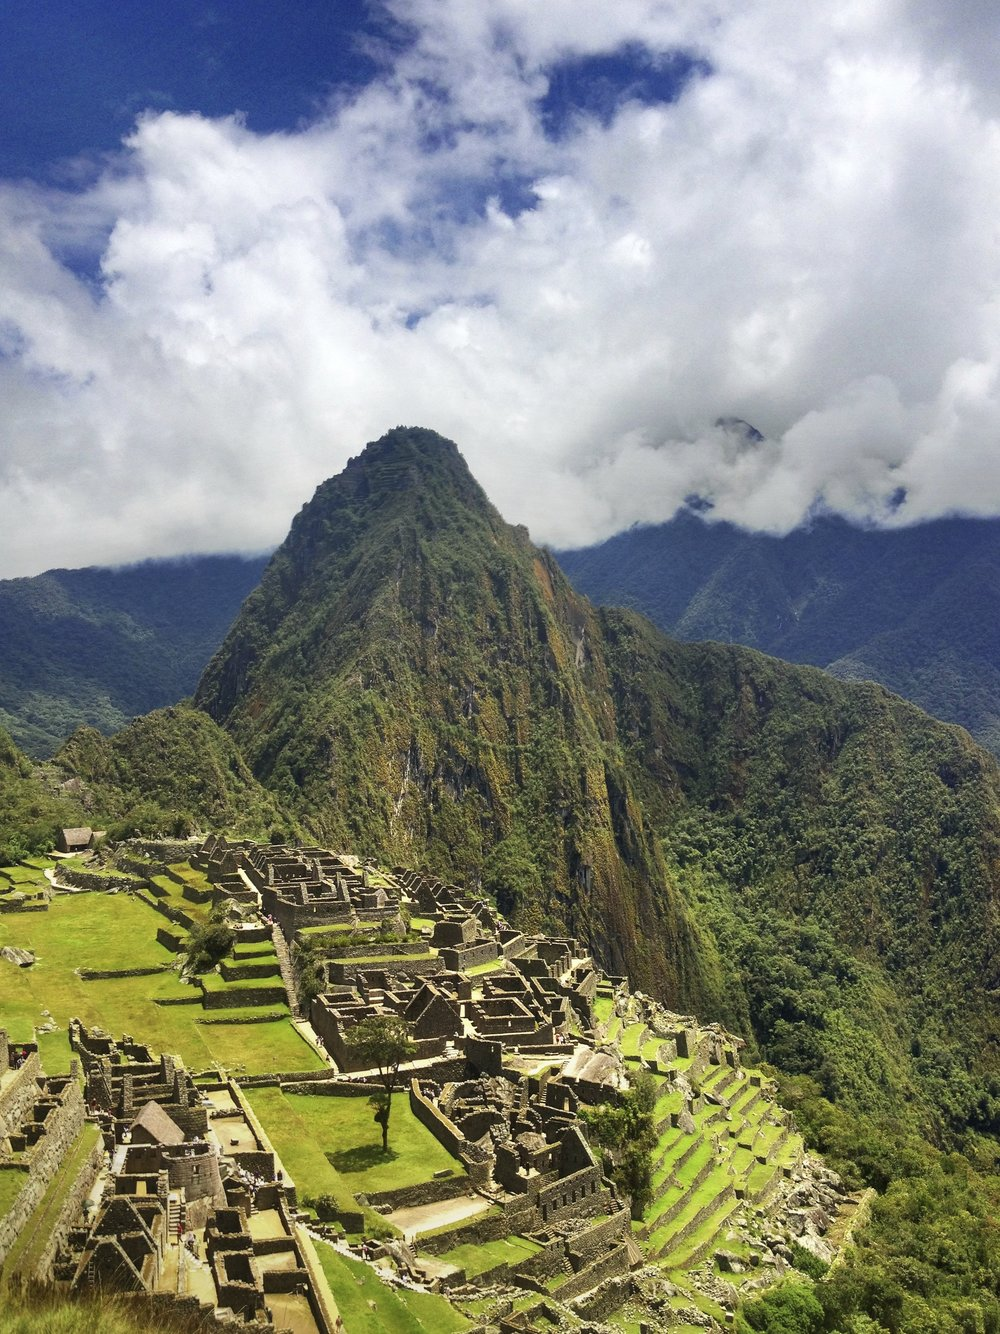 Join me for Spiritual Pilgrimage to Machu Picchu & Cusco Peru -